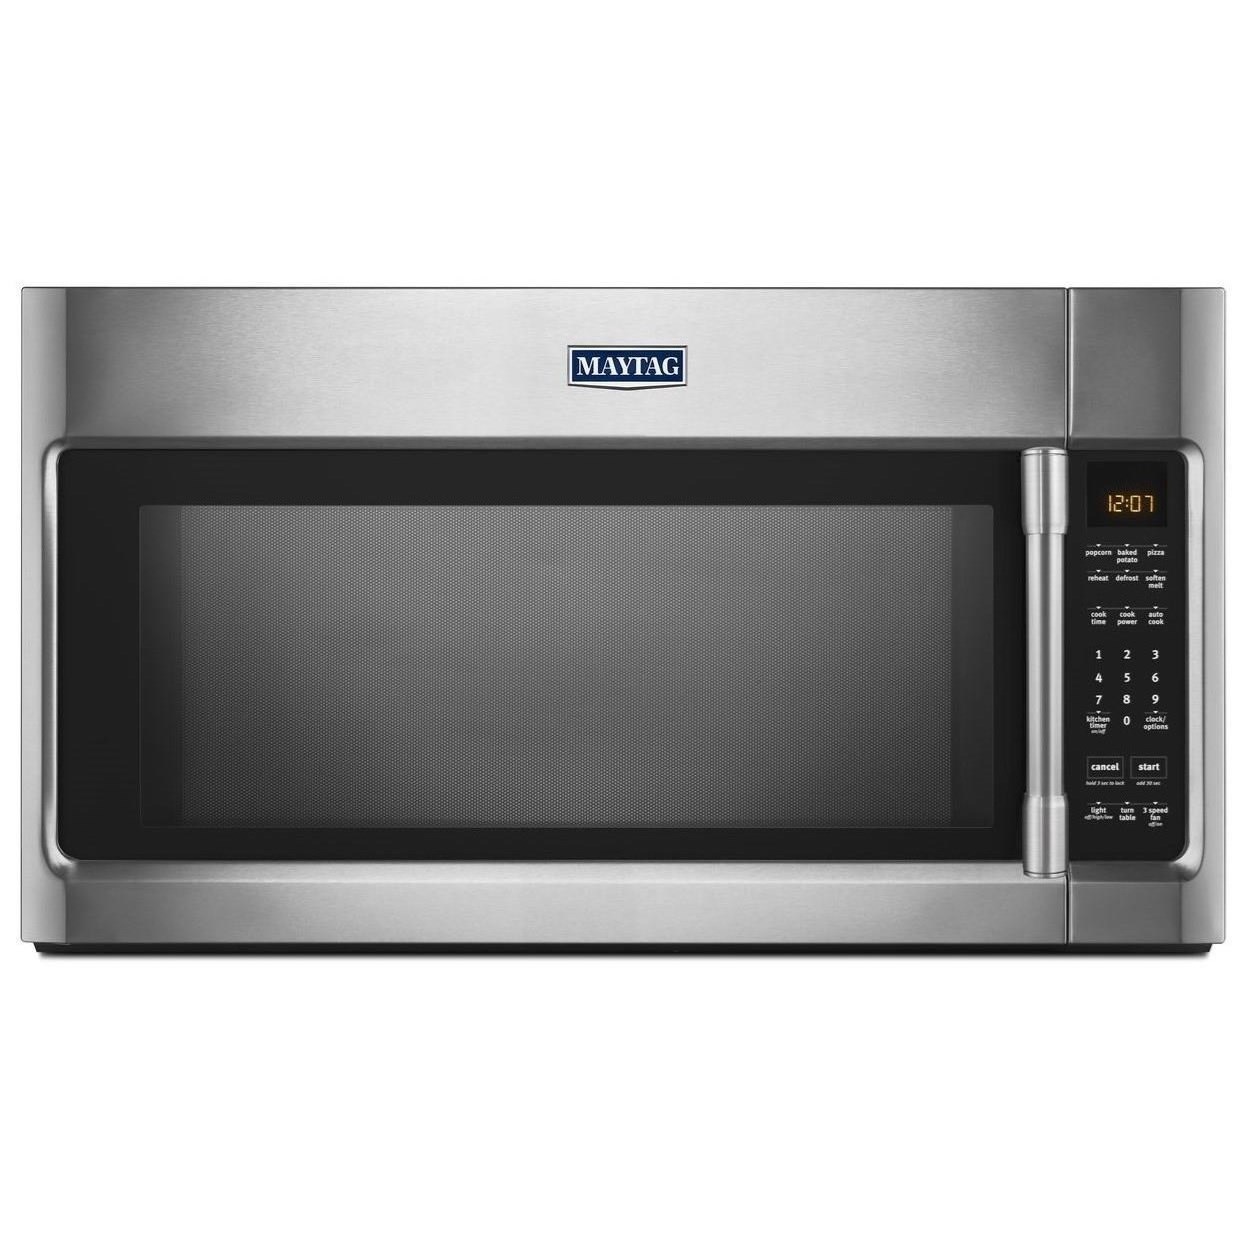 Maytag Over The Range Microwave With Sensor Cooking 2 Cu Ft Sheely S Furniture Appliance Microwaves Over The Range